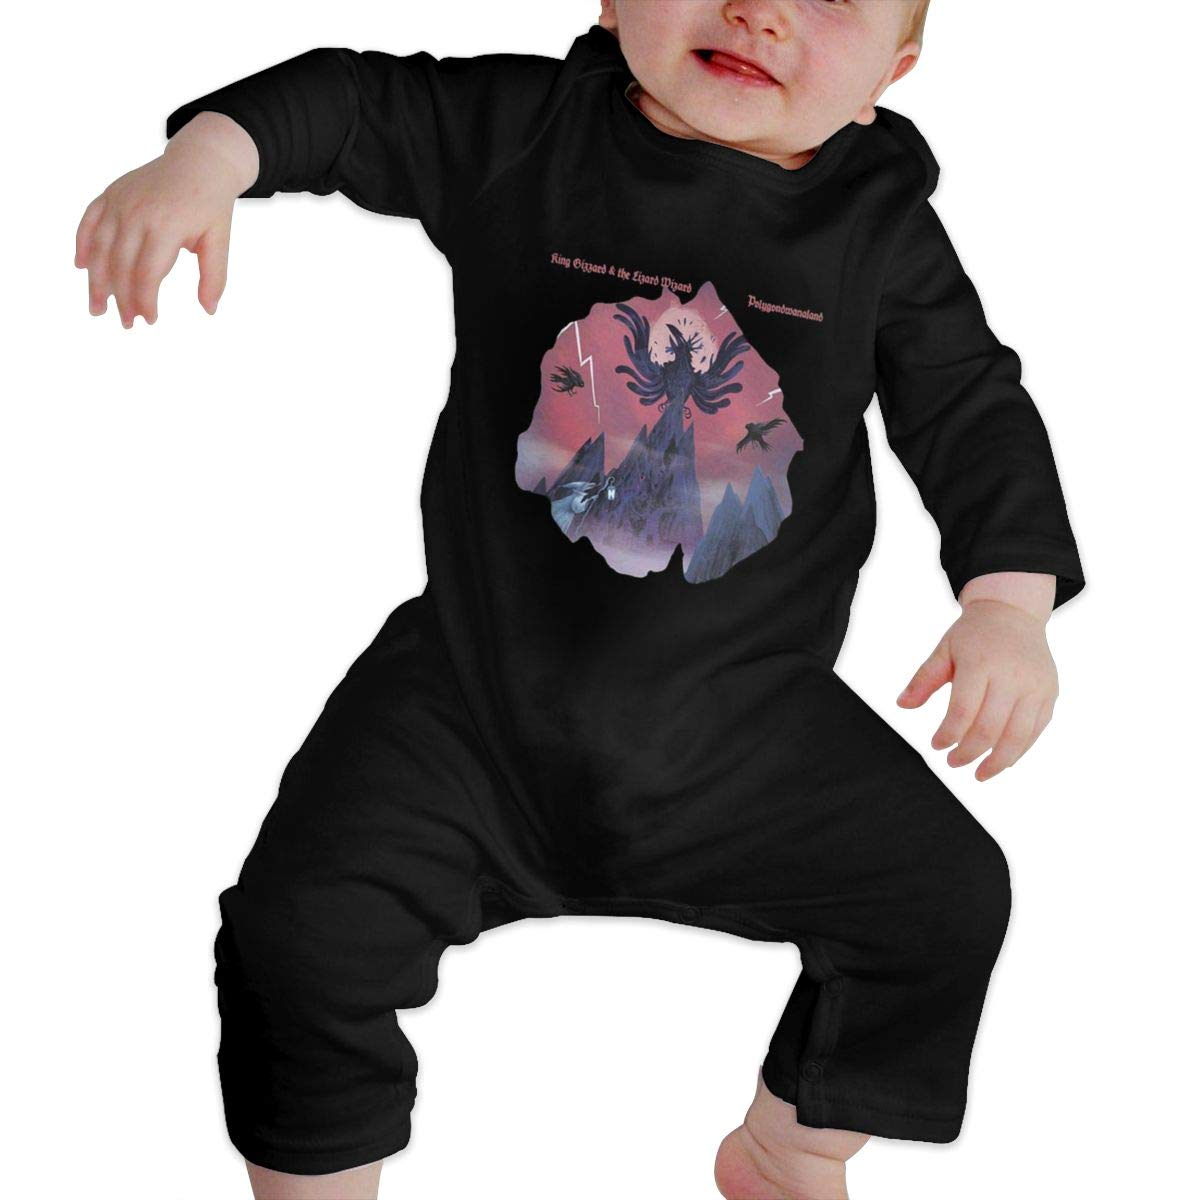 Fional Infant Long Sleeve Romper King-Gizzard-and-Lizard-Wizard-Shirt Newborn Babys 0-24M Organic Cotton Jumpsuit Outfit